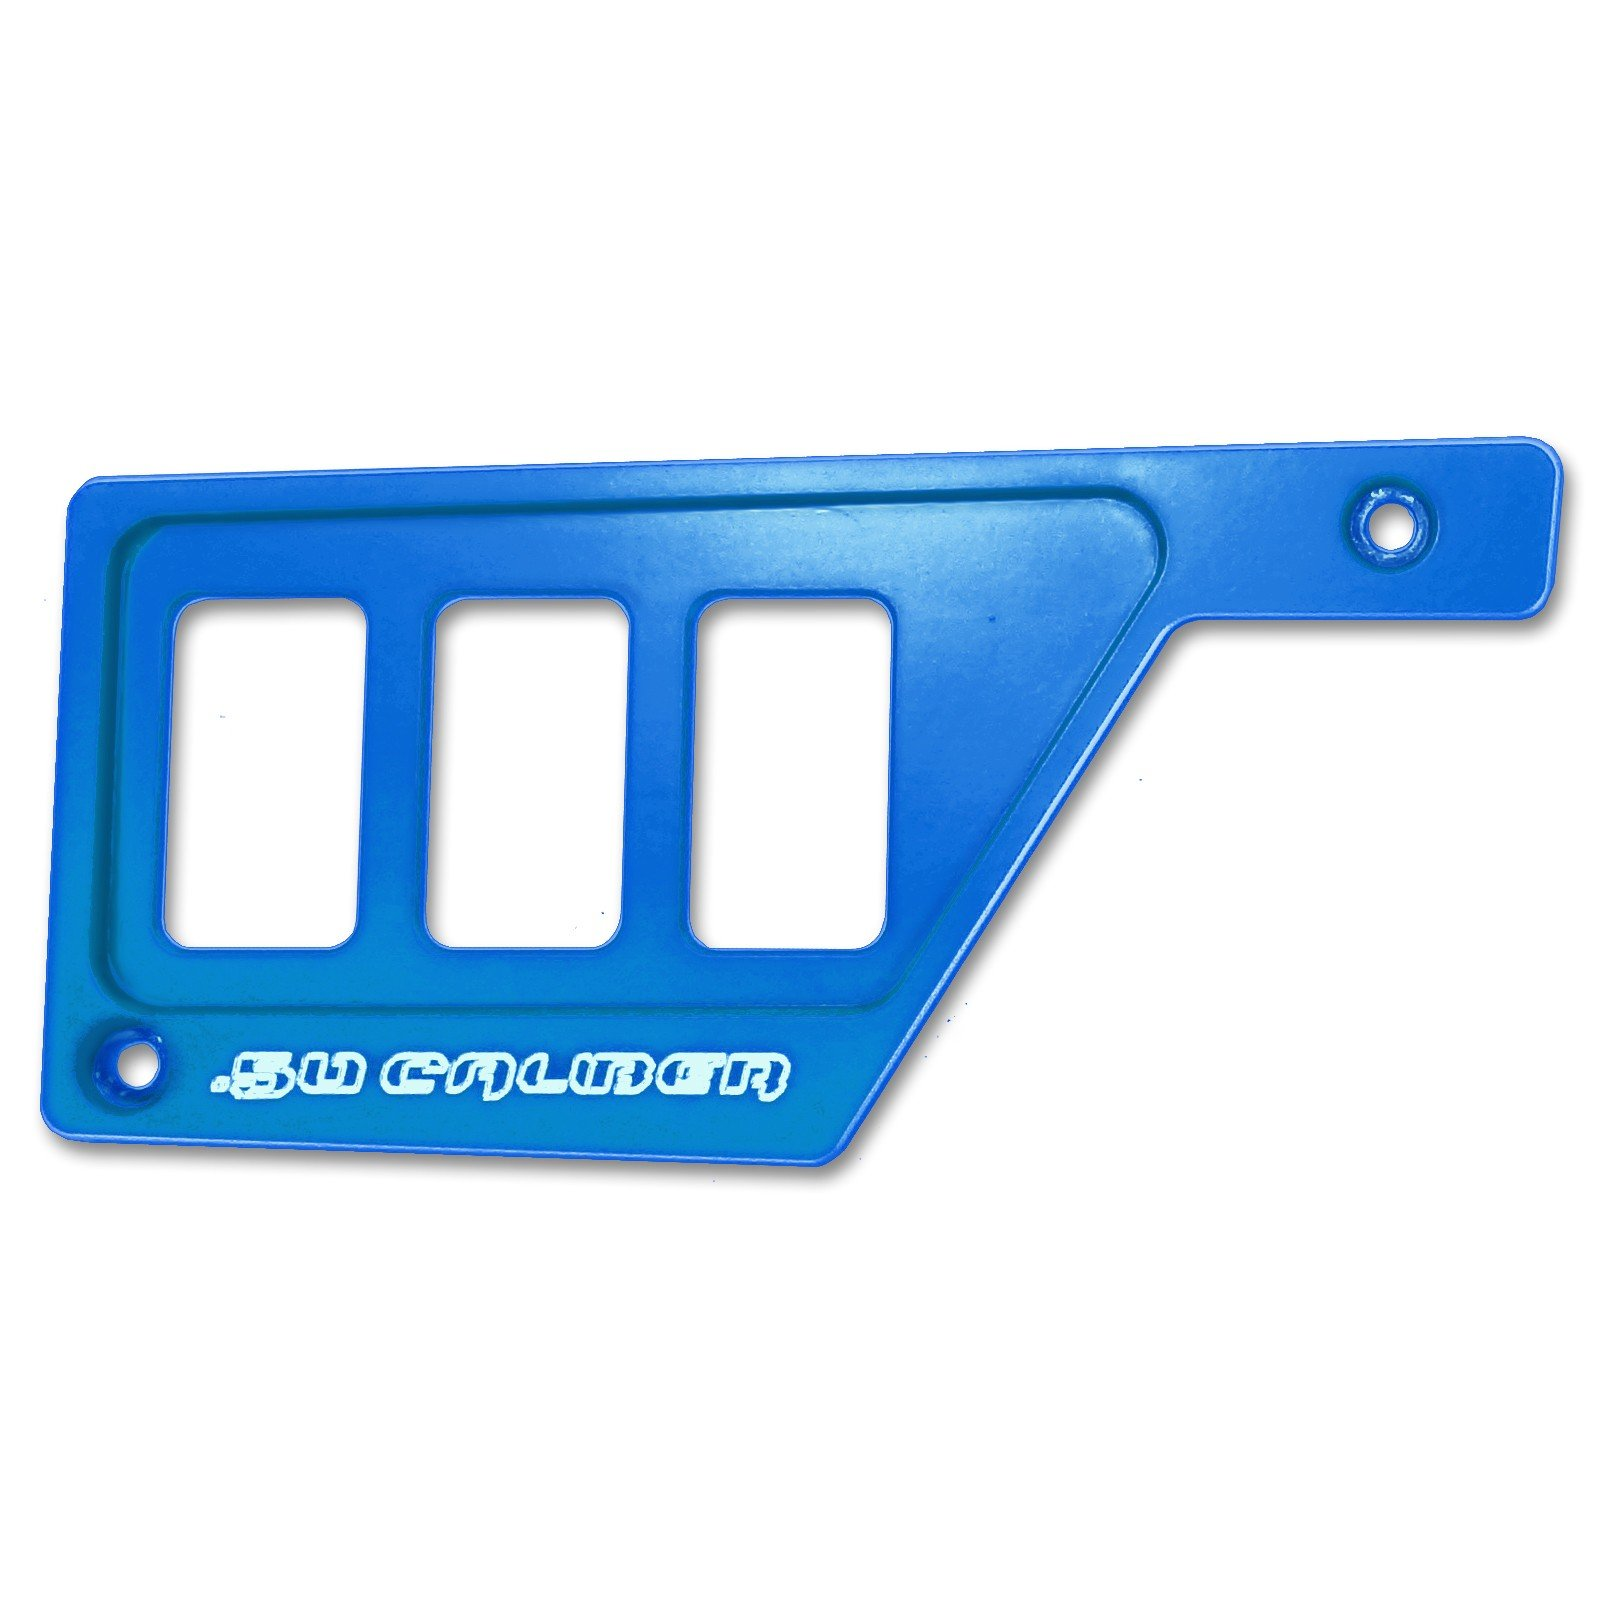 50 Caliber Racing 3 Switch Dash Panel Only LH Left Side Billet Aluminum Blue Powdercoated without Waterproof Illuminated Switch fits RZR XP1000 [5357E13]